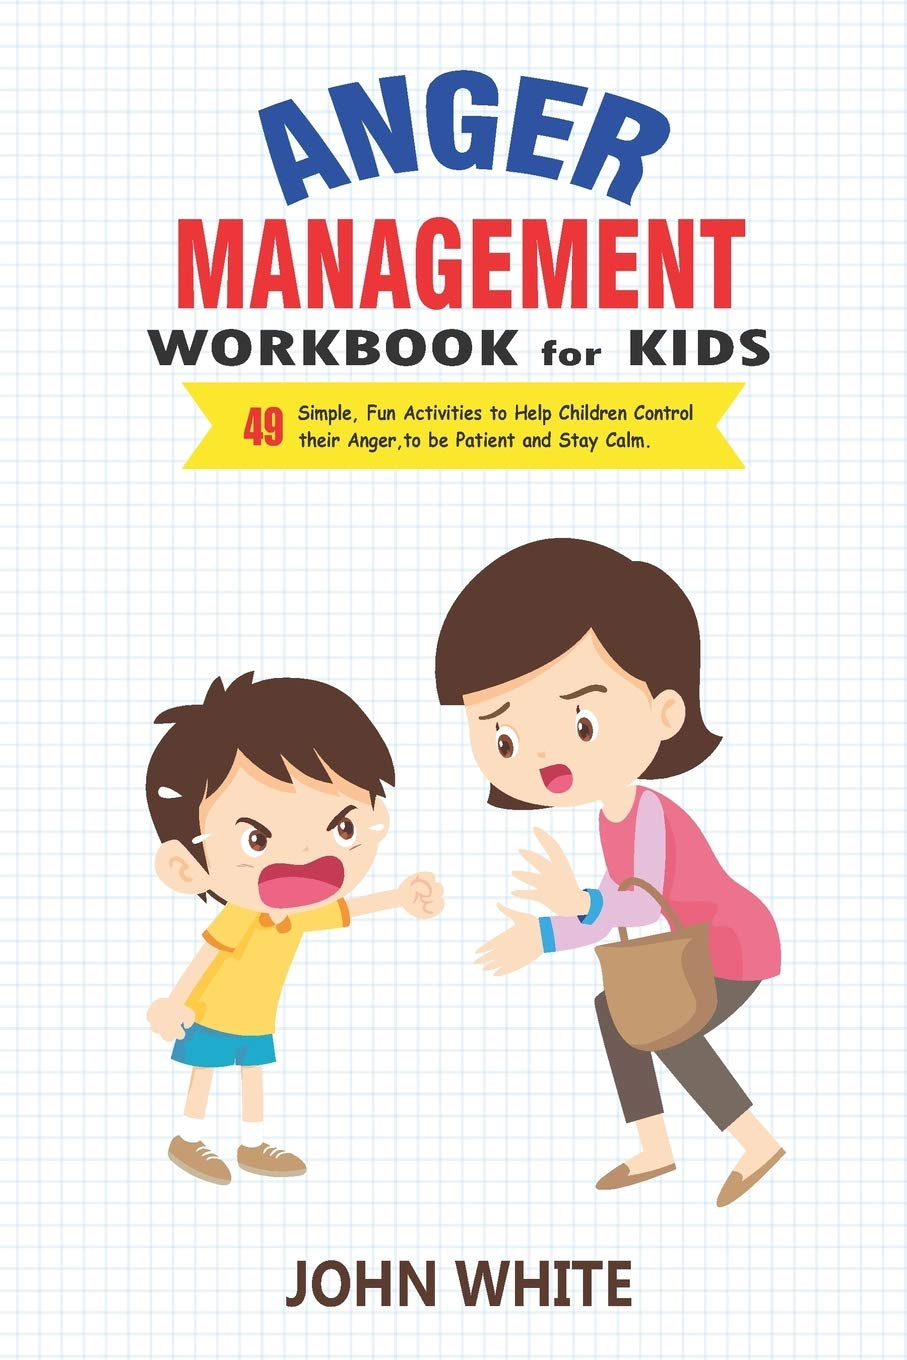 Anger Management Workbook For Kids 49 Simple Fun Activities To Help Children Control Their Anger To Be Patient And Stay Calm White John 9781688556911 Amazon Com Books